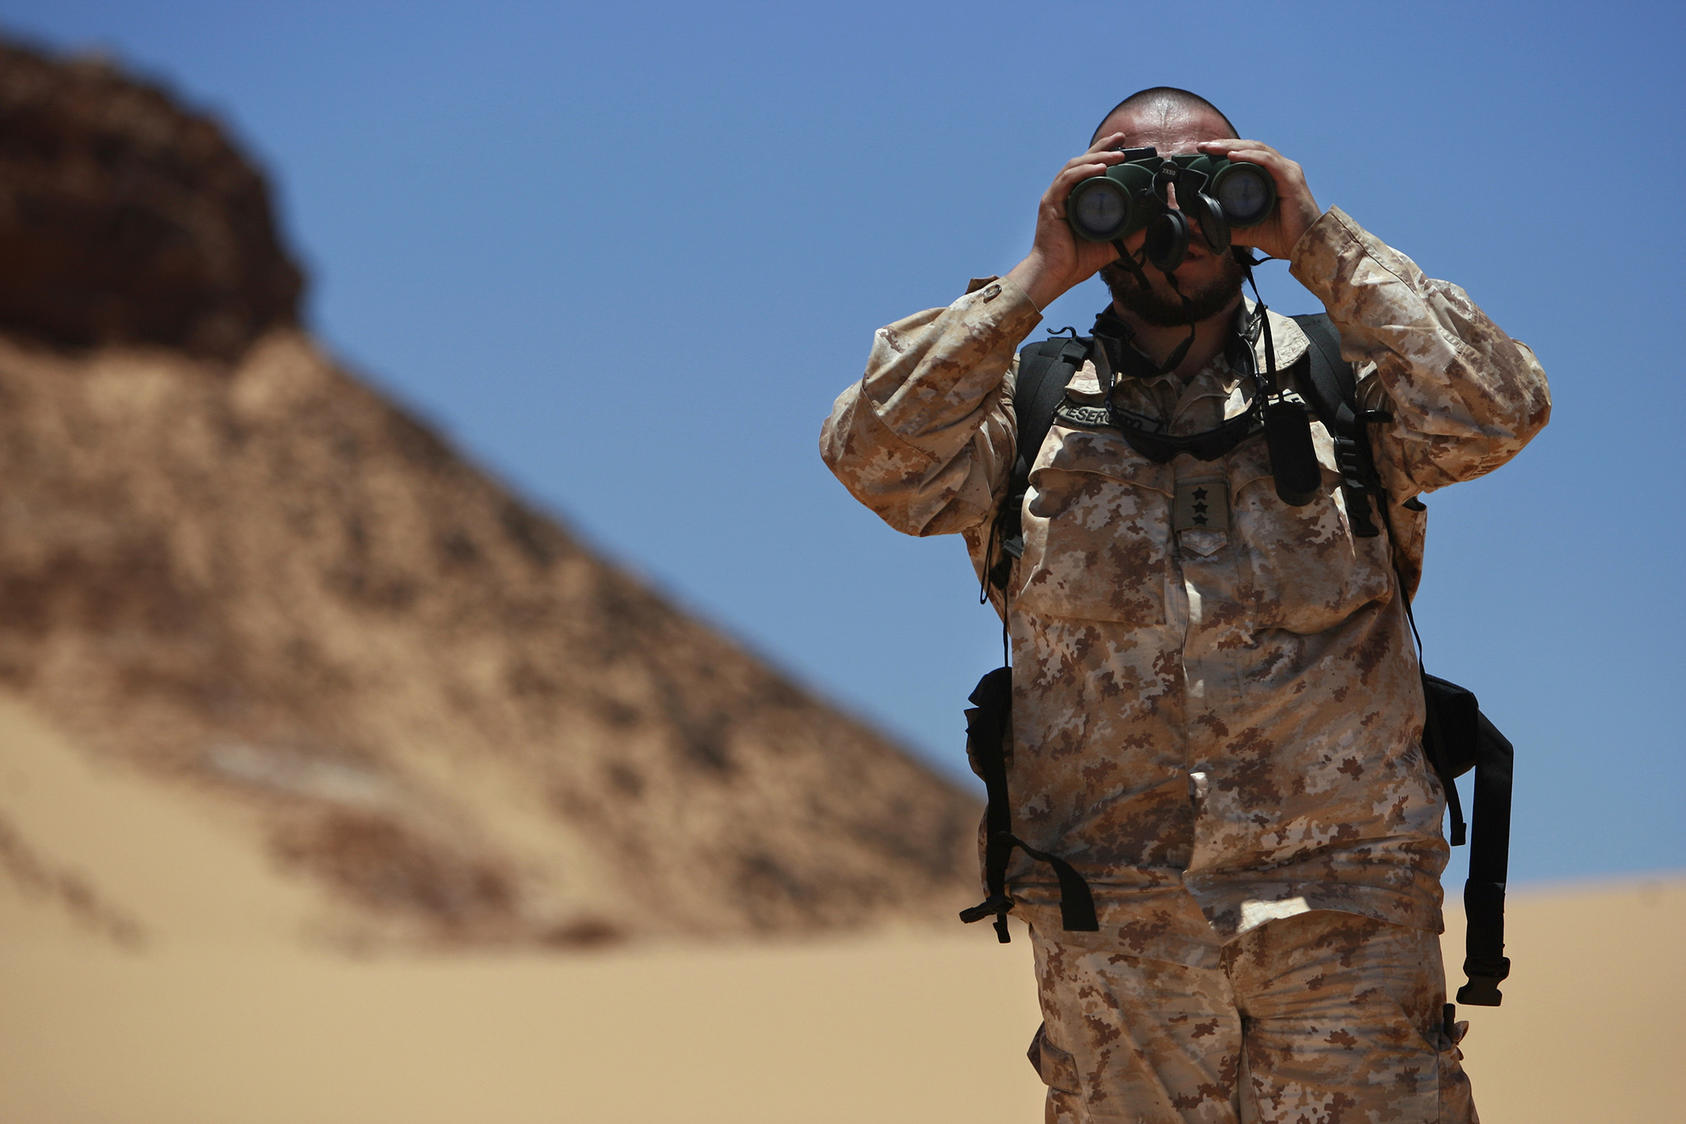 Antonio Achille, working with the Military Liaison Office of the U.N. Mission for the Referendum in Western Sahara, looks through binoculars during a cease-fire monitoring patrol in Oum Dreyga, Western Sahara. (United Nations Photo)